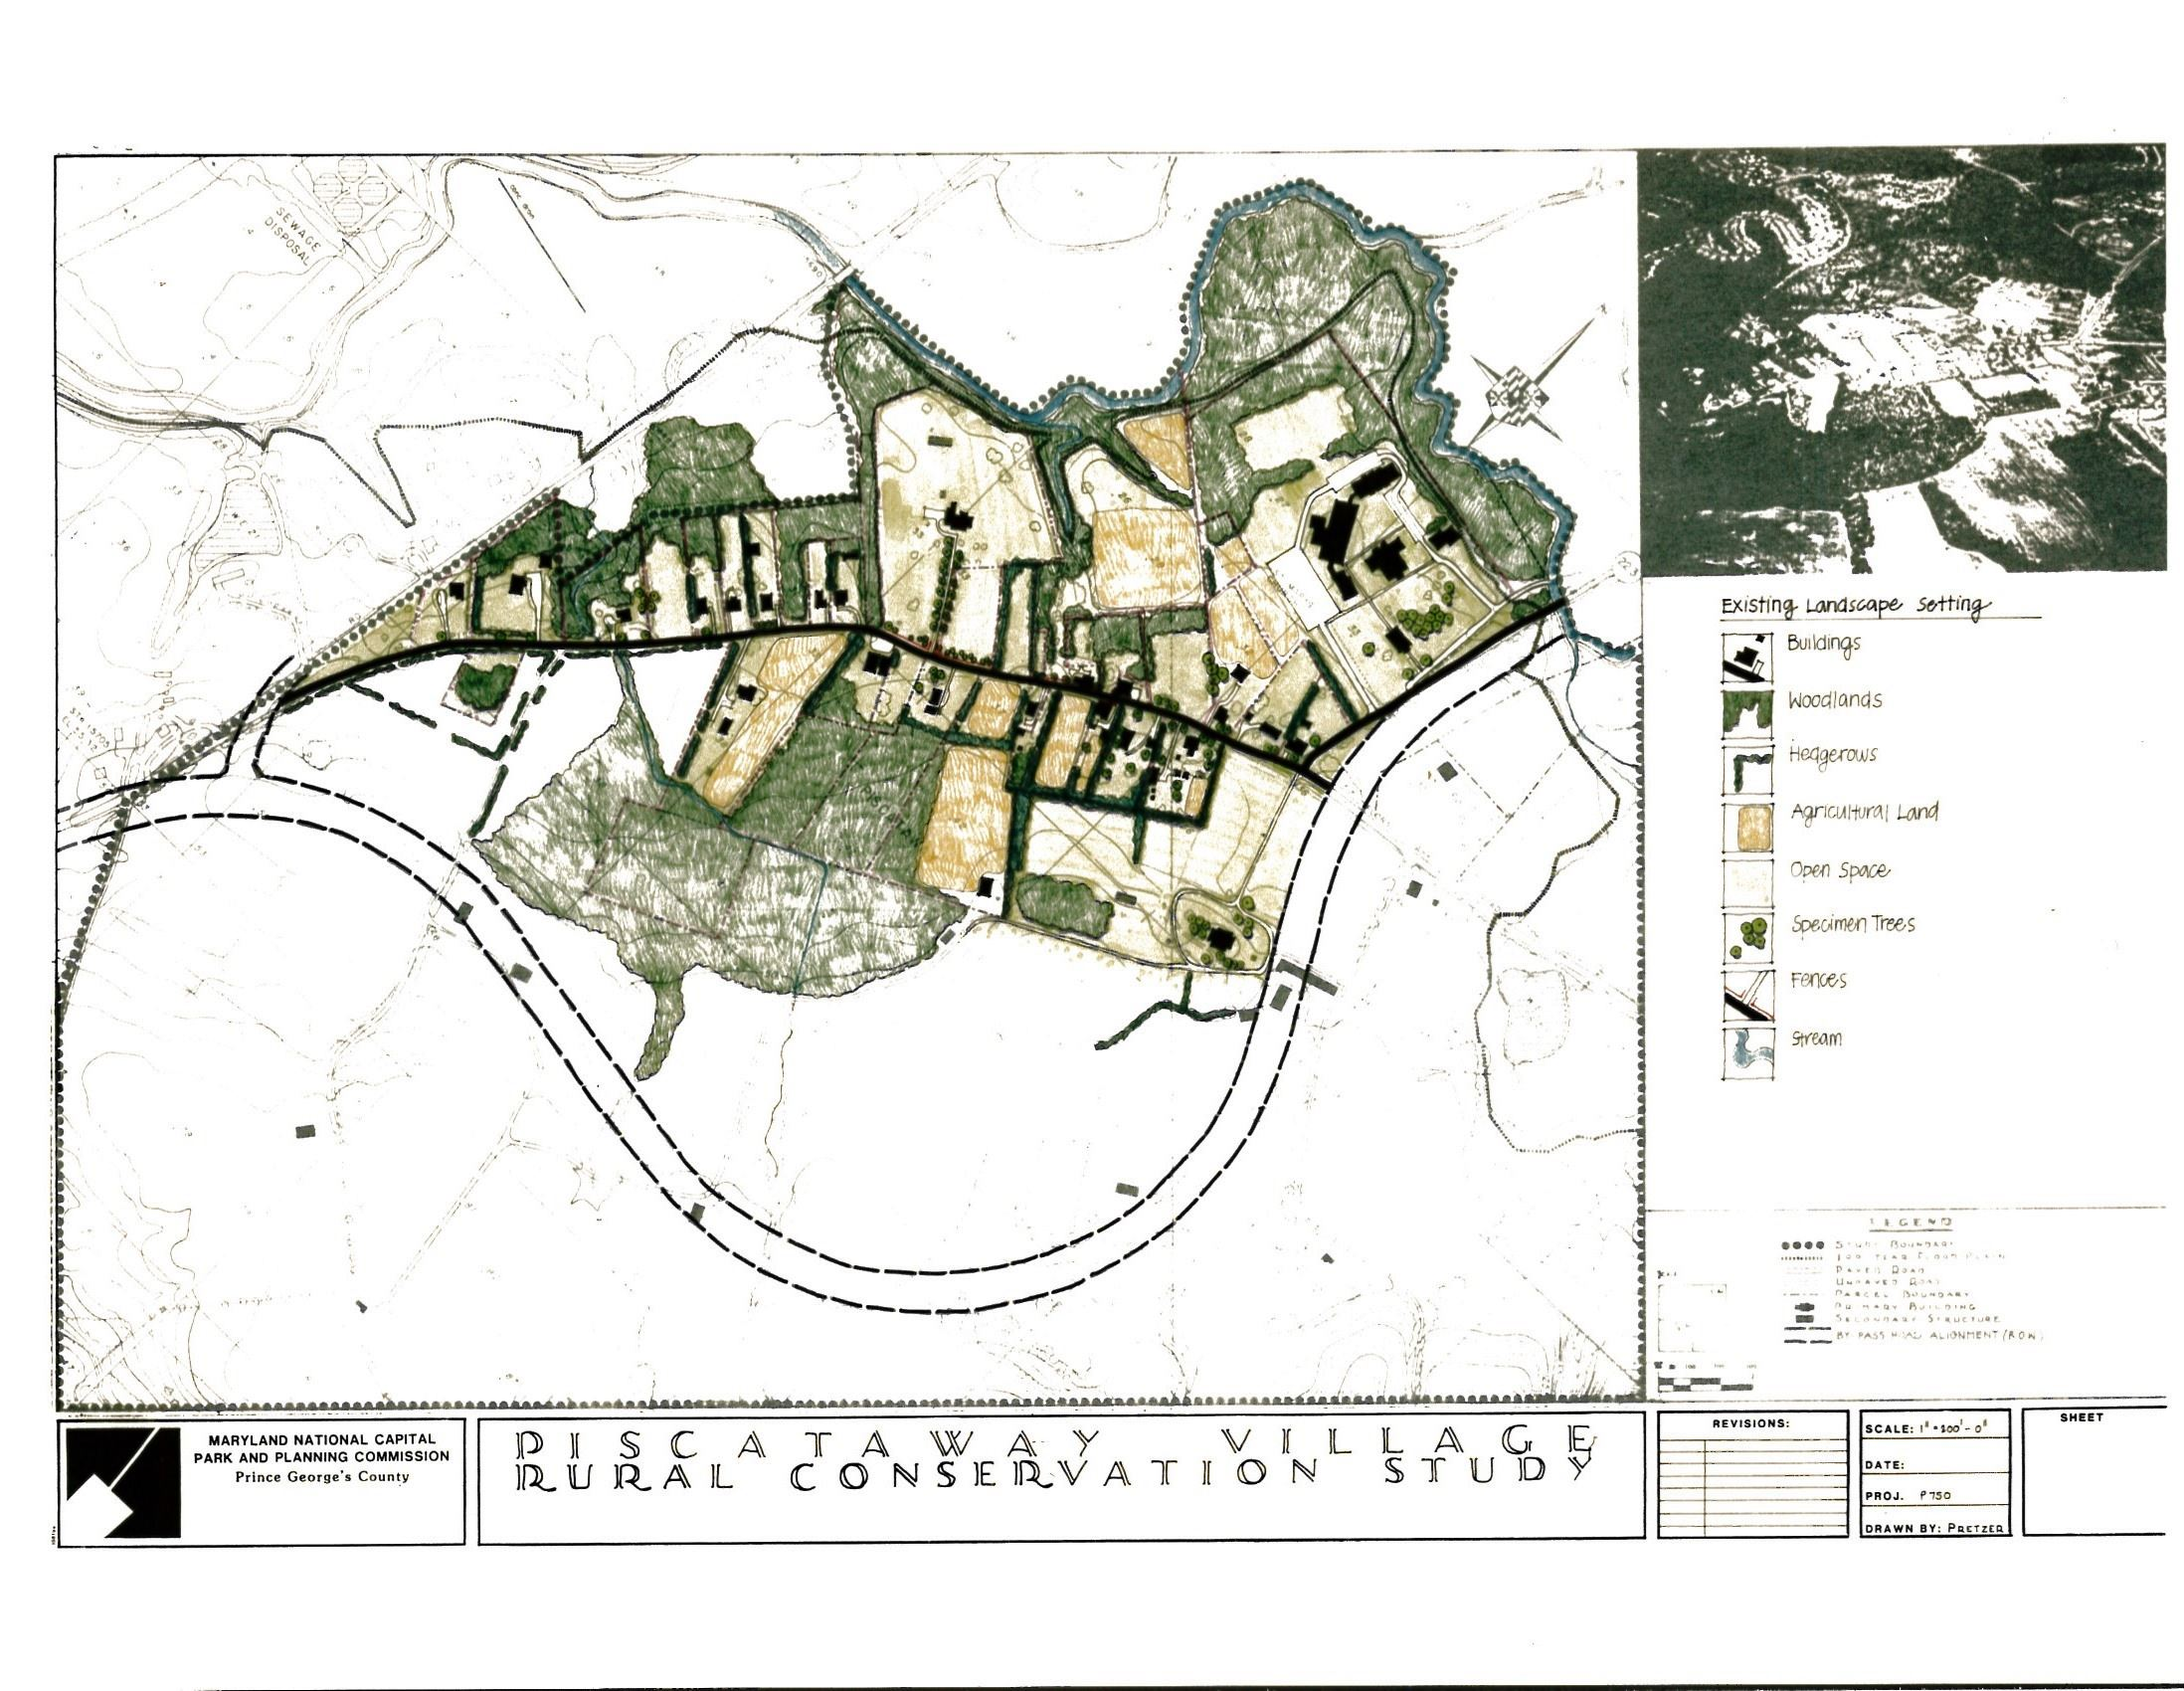 Piscataway Village Rural Conservation Plan Concept